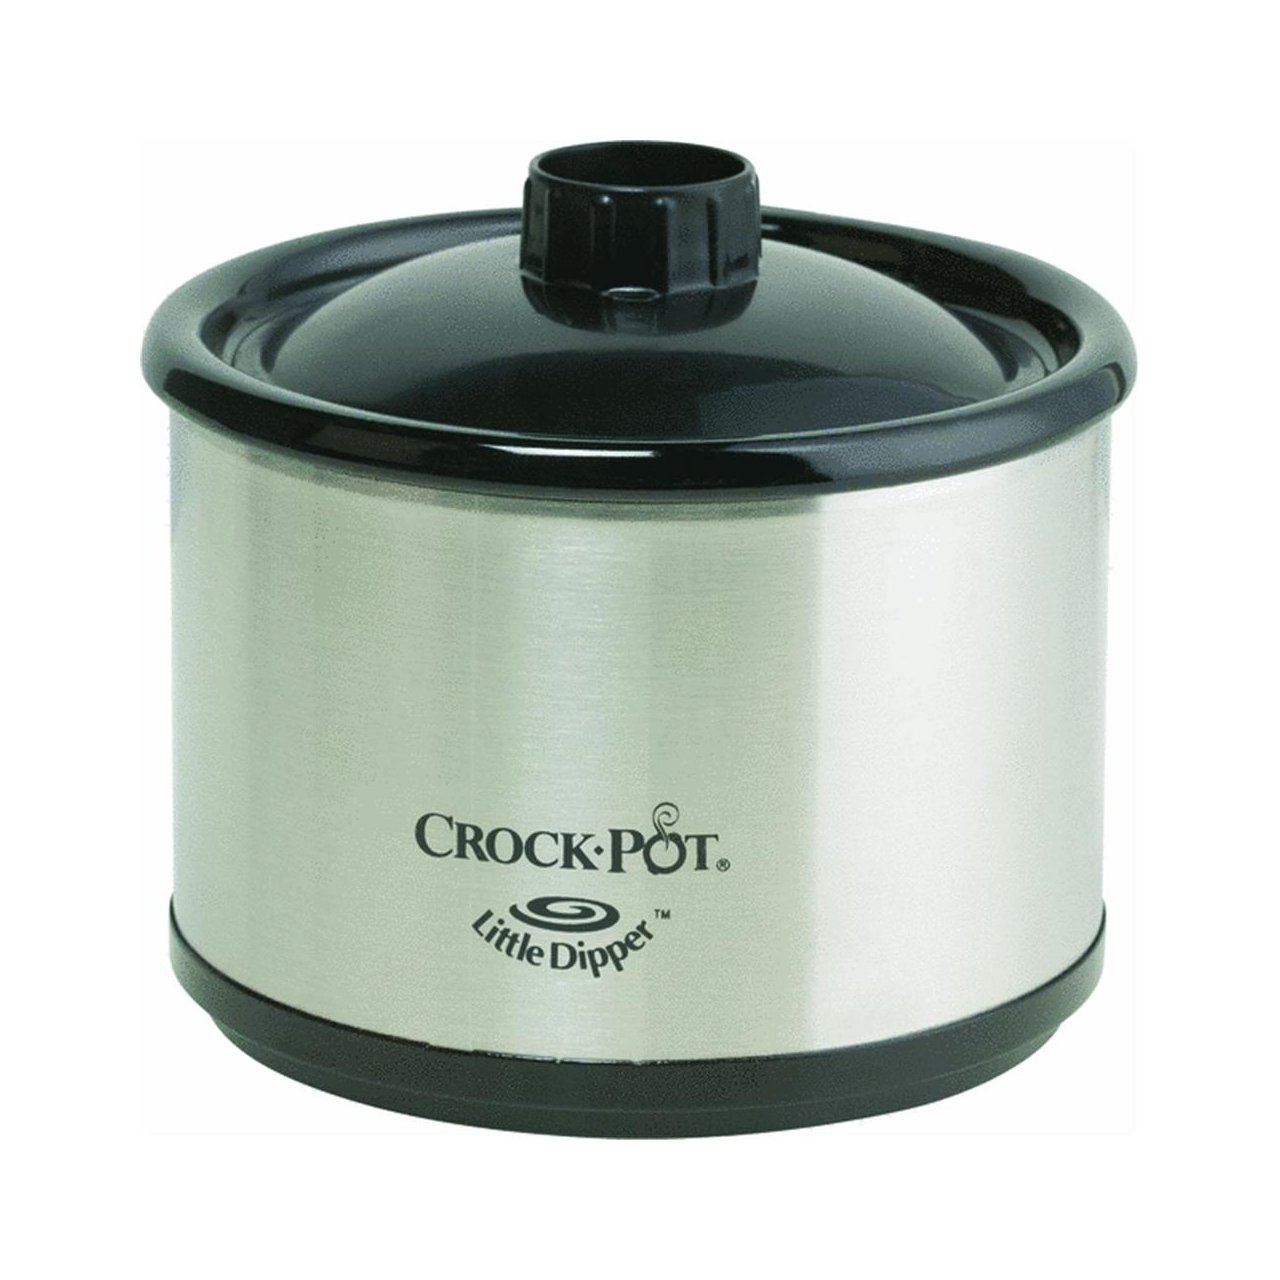 Crock Pot 32041-C Stainless Steel Little Dipper Warmer